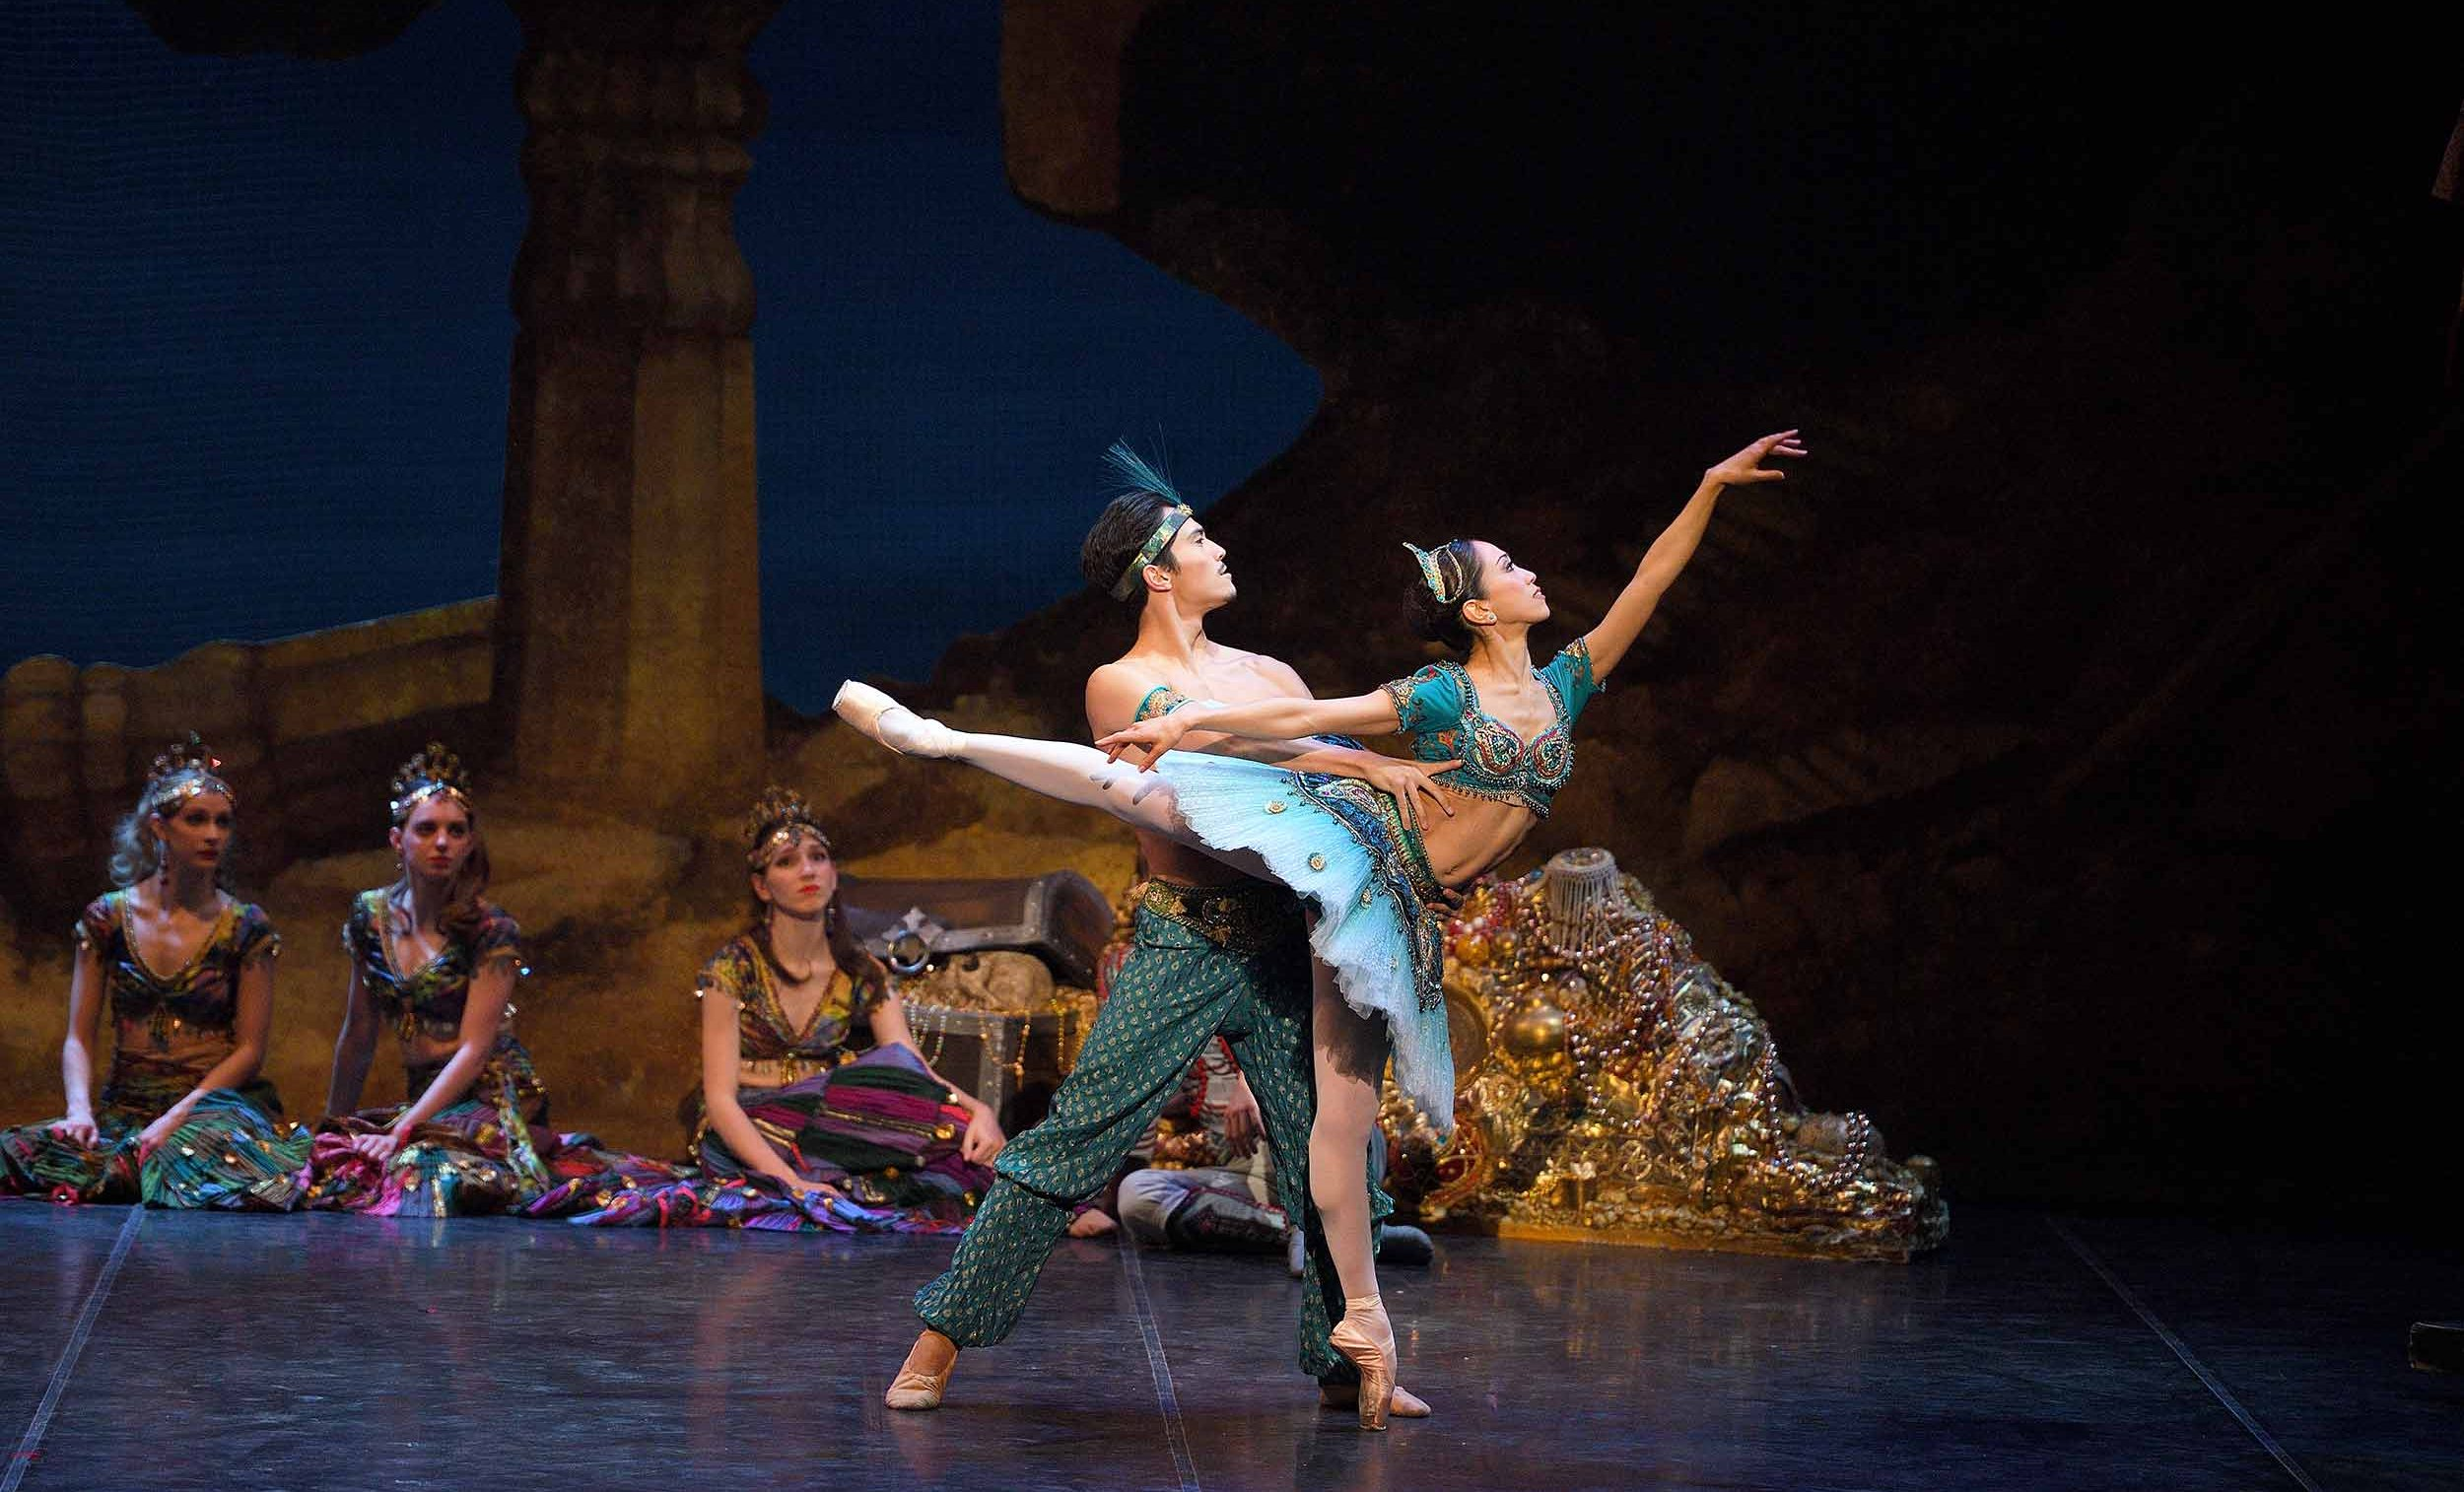 Jeffrey-Cirio-as-Ali,-Erina-Takahashi-as-Medora-in-ENB's-Le-Corsaire-(c)-Laurent-Liotardo